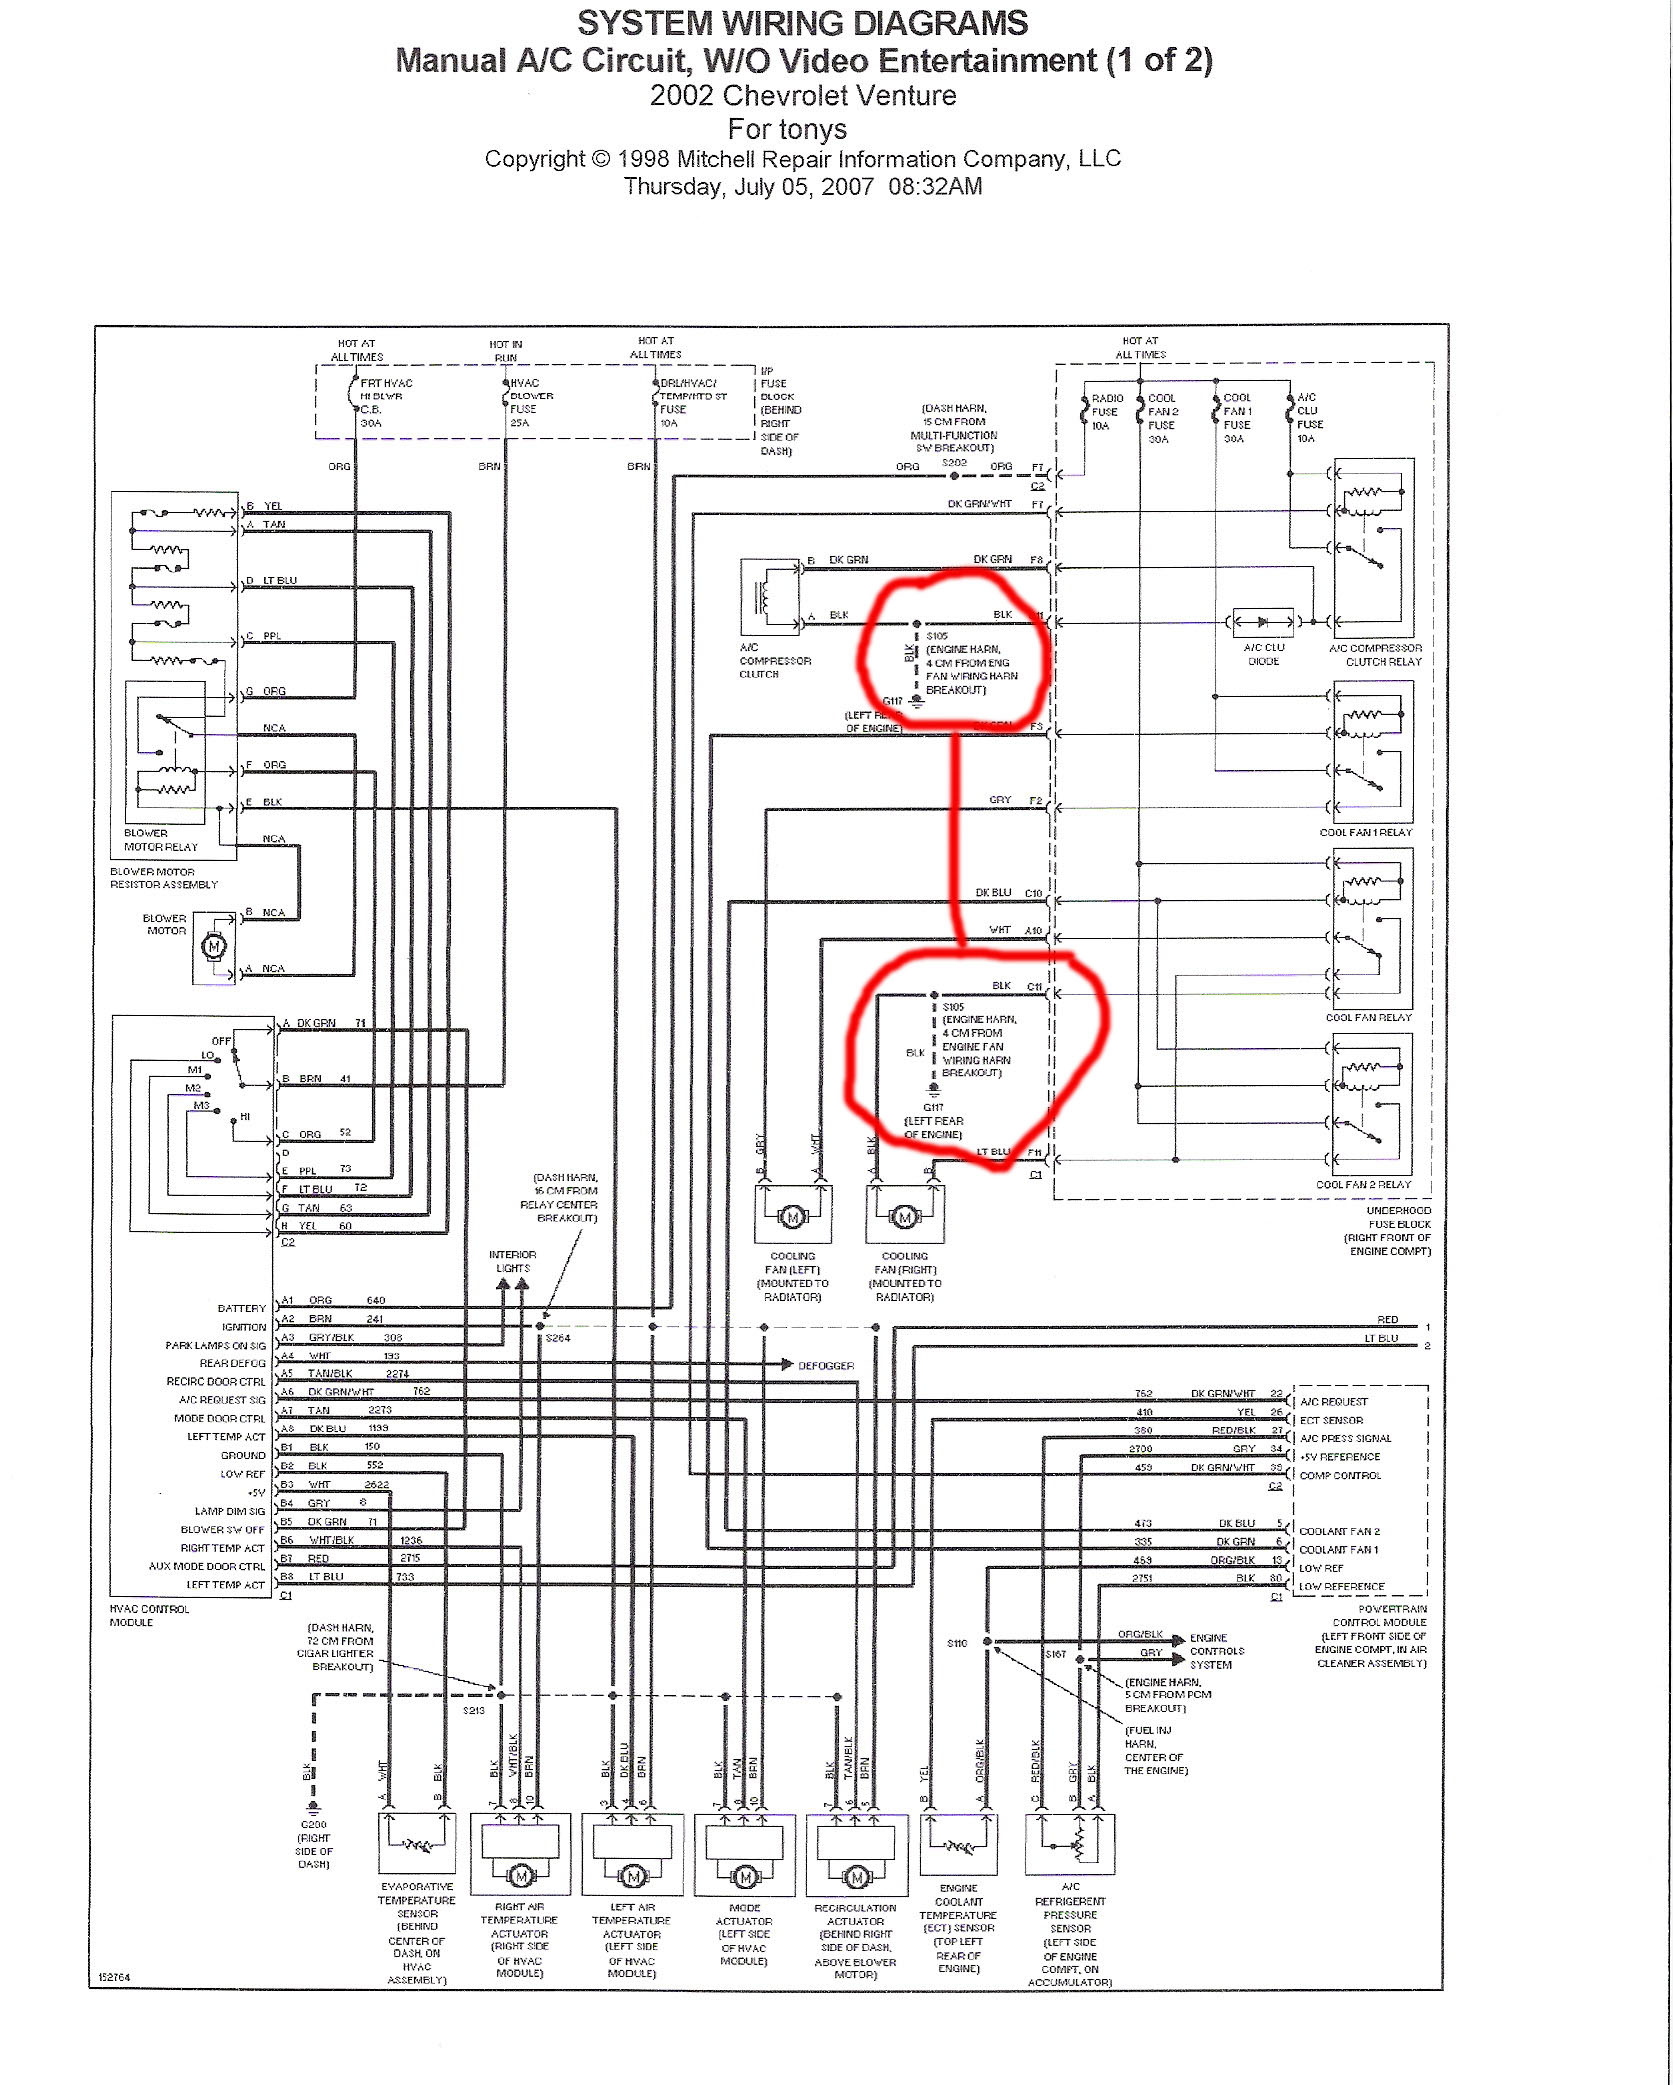 Chevy Sonic Wiring Diagram